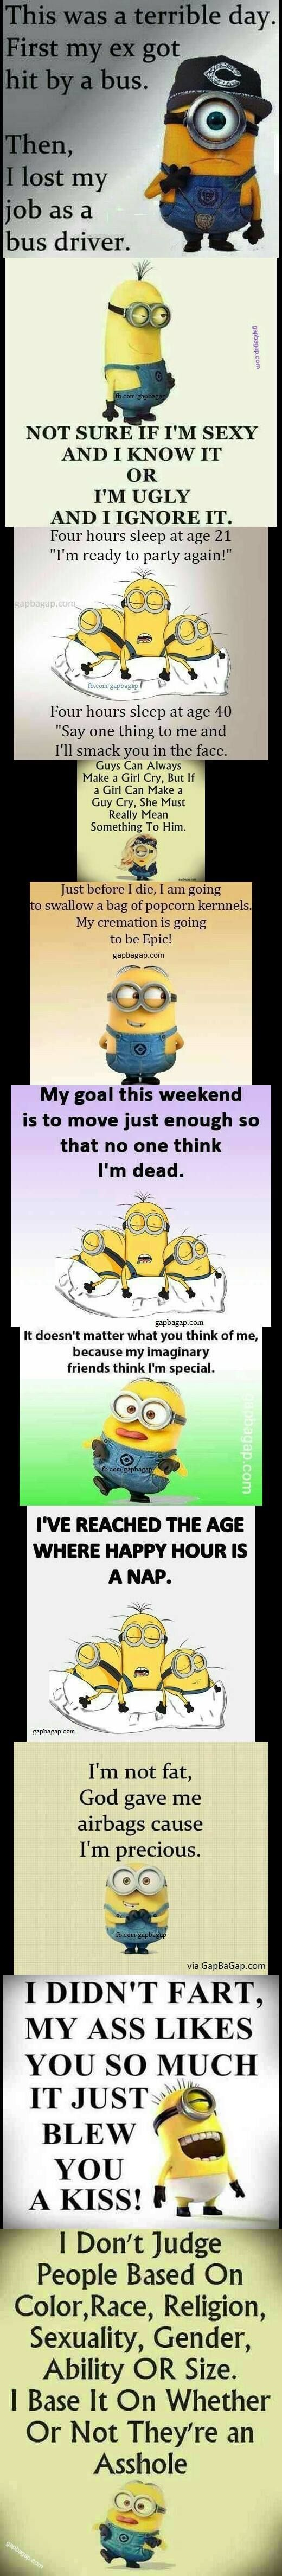 Top 11 Funniest Memes By The #Minions